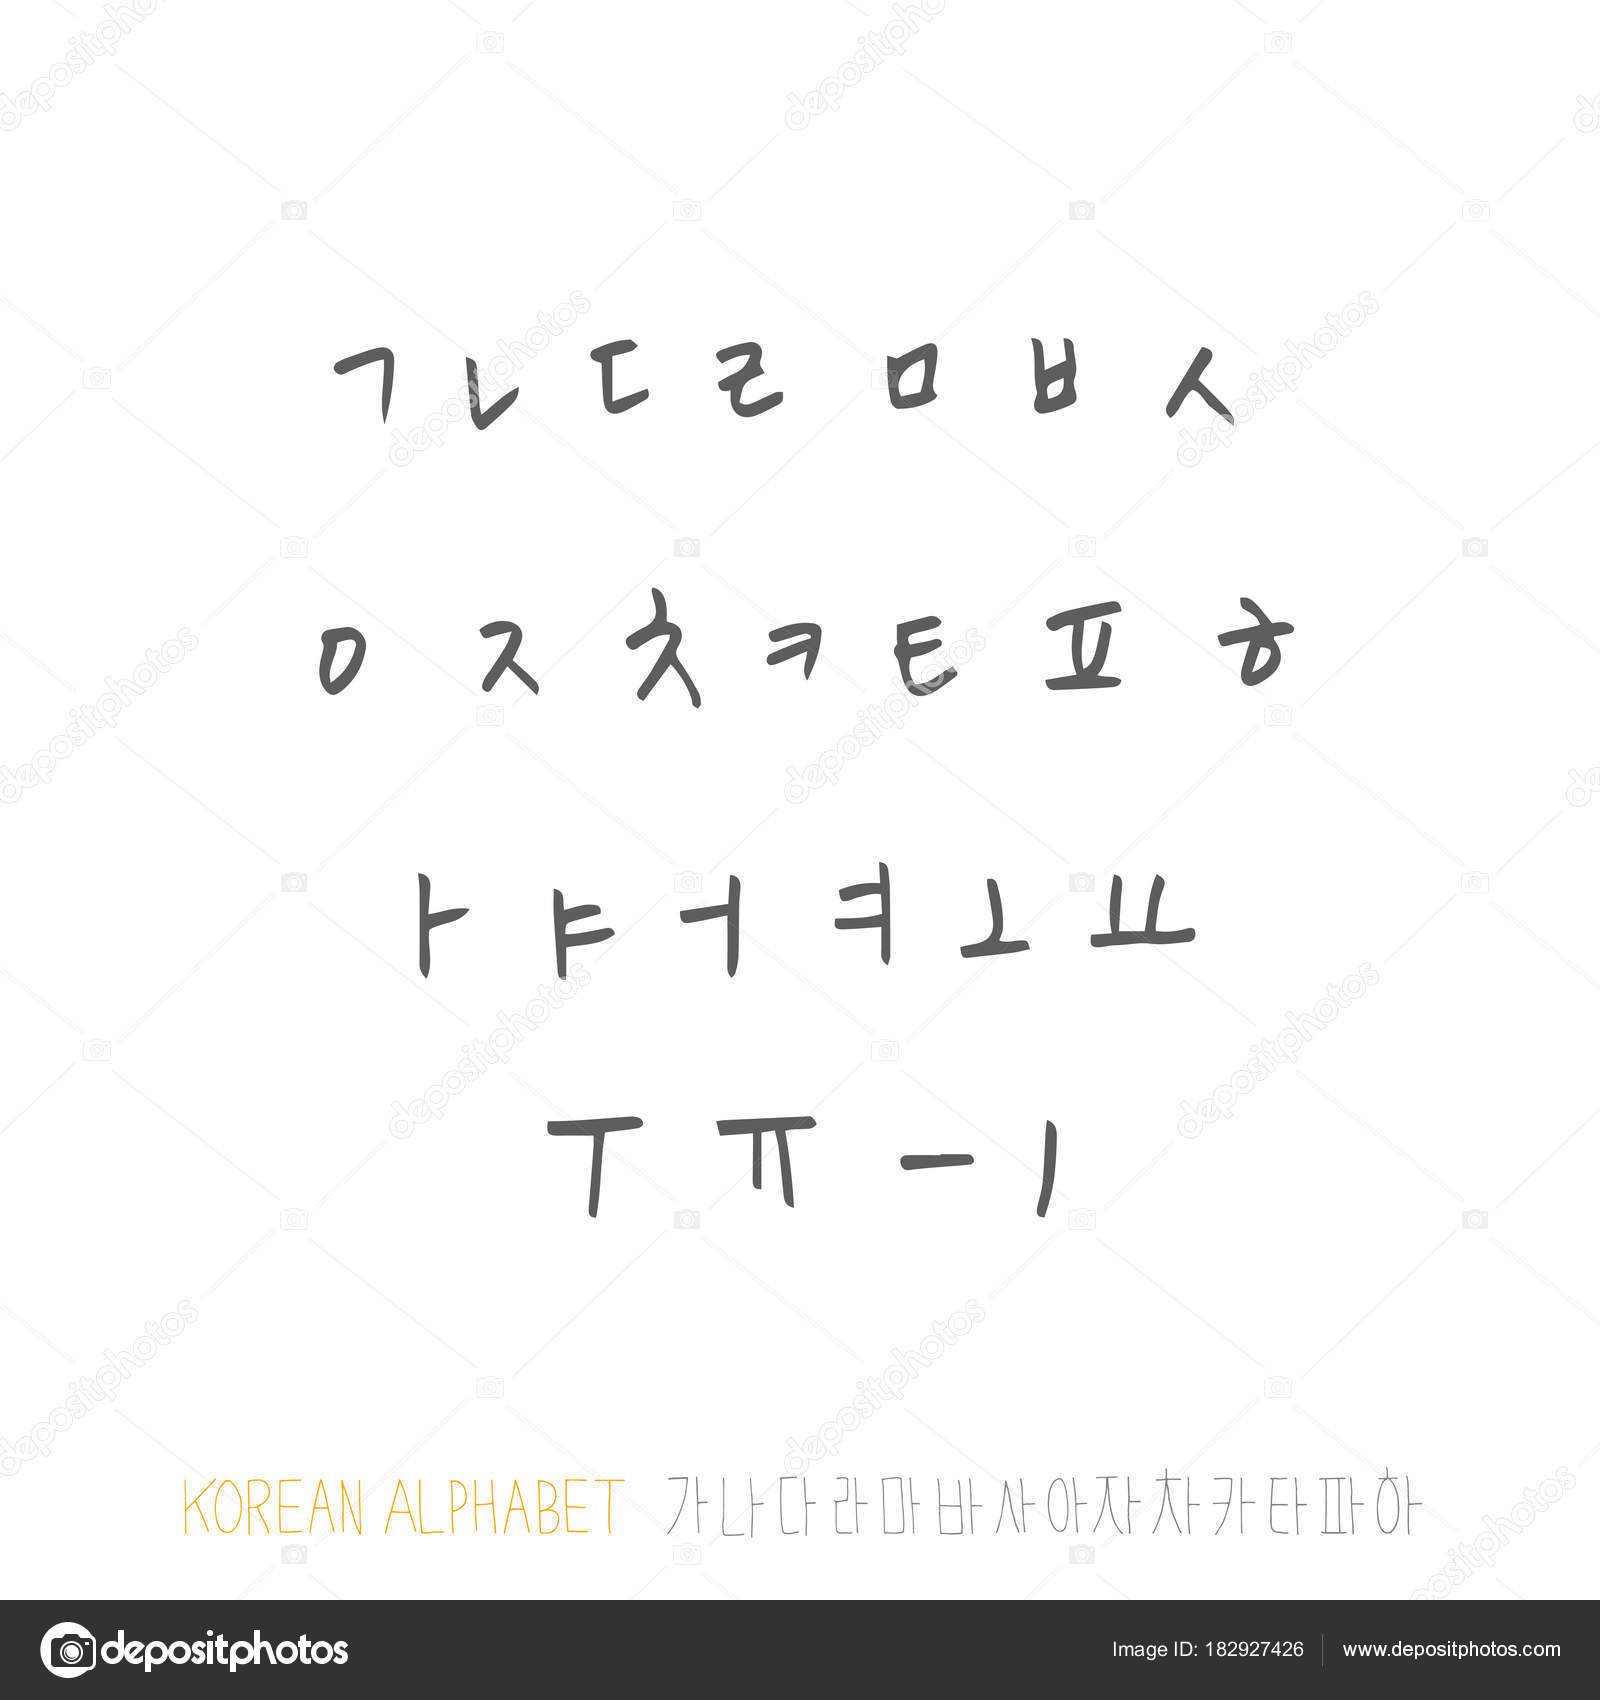 Cursive Korean Alphabet